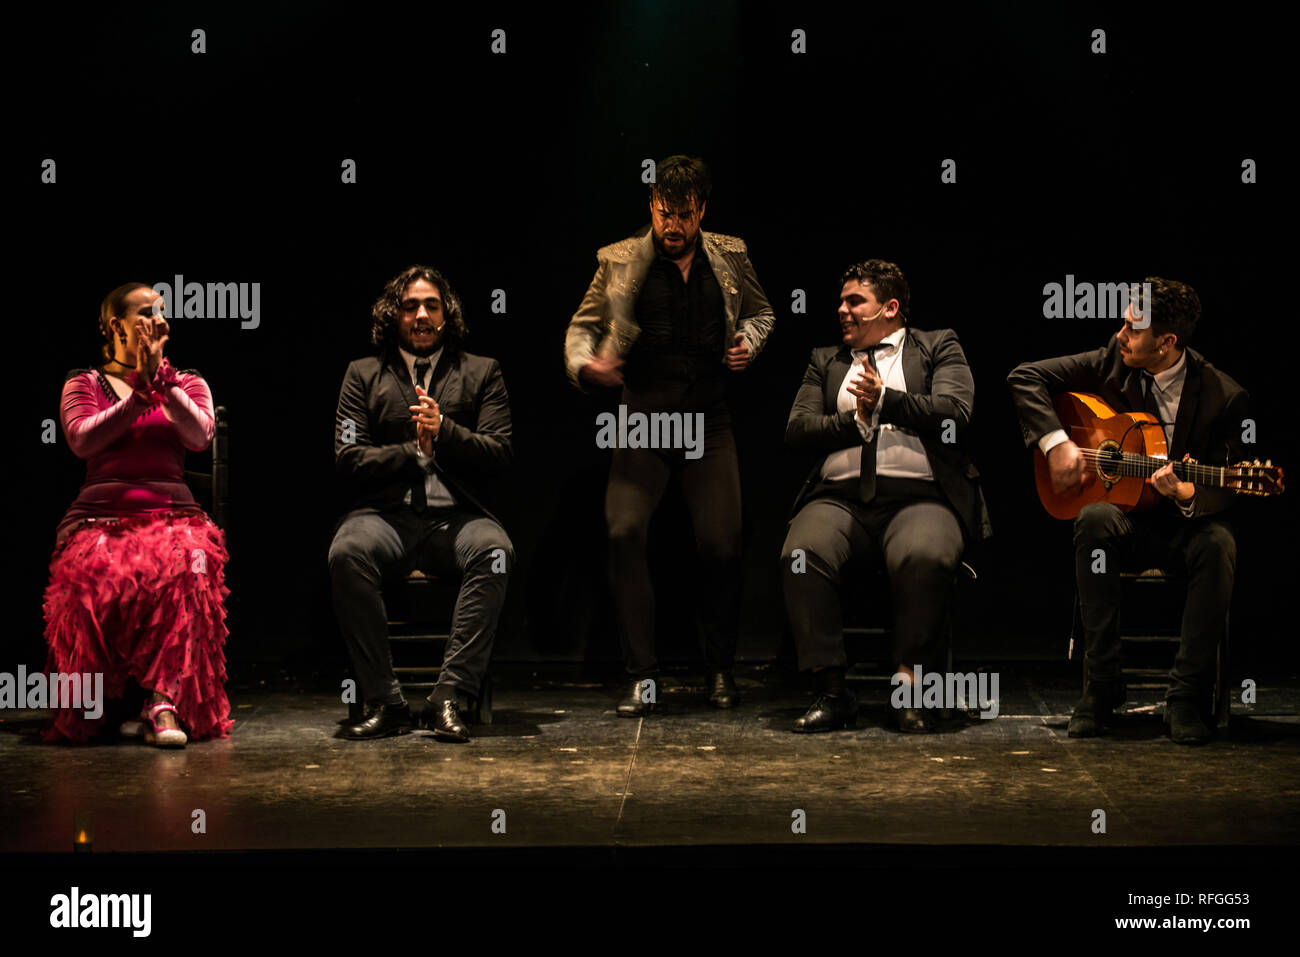 'Emociones' Flamenco show, Teatro Flamenco Madrid, January 2019 - Stock Image